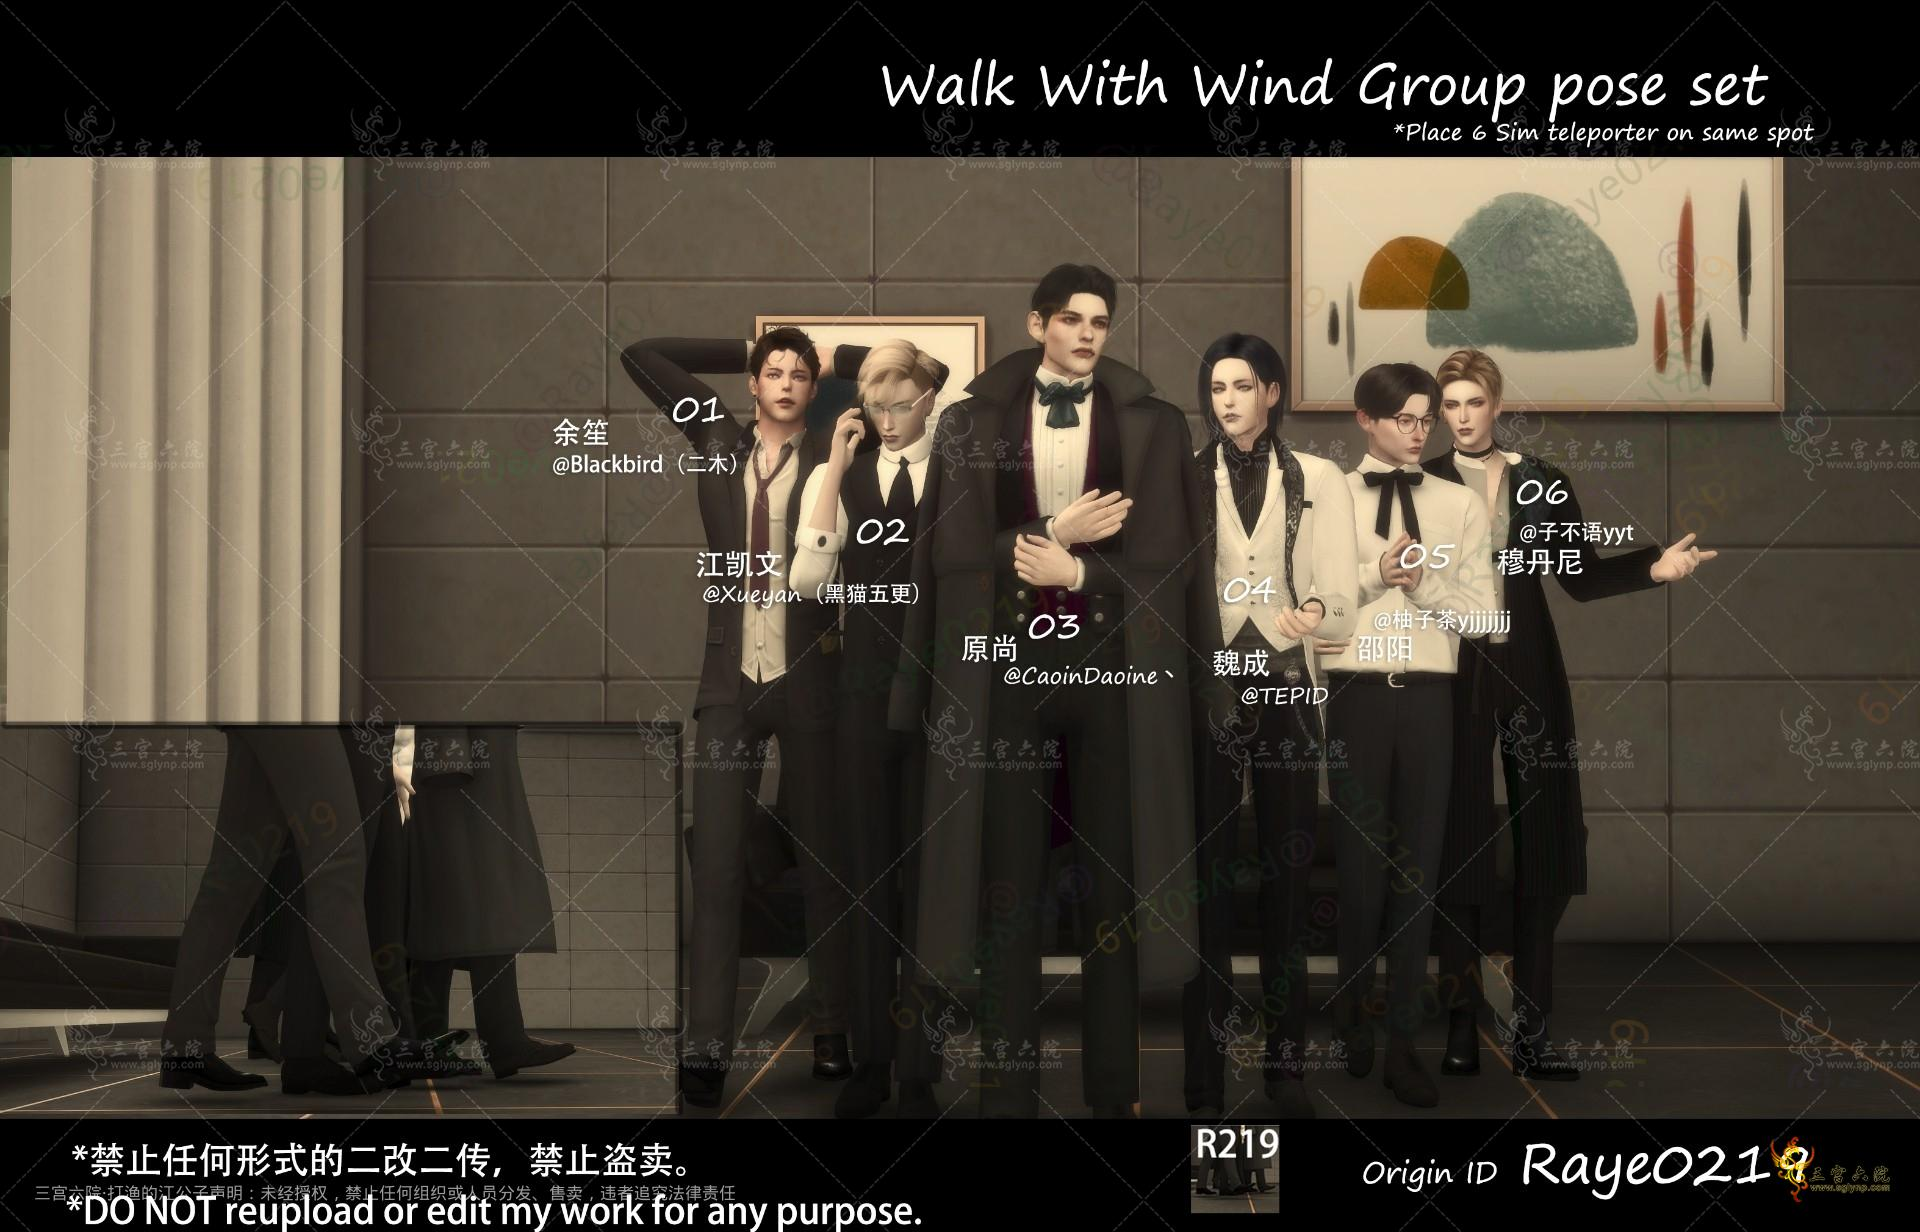 [R219] pose02【Walk with Wind】water mark.png